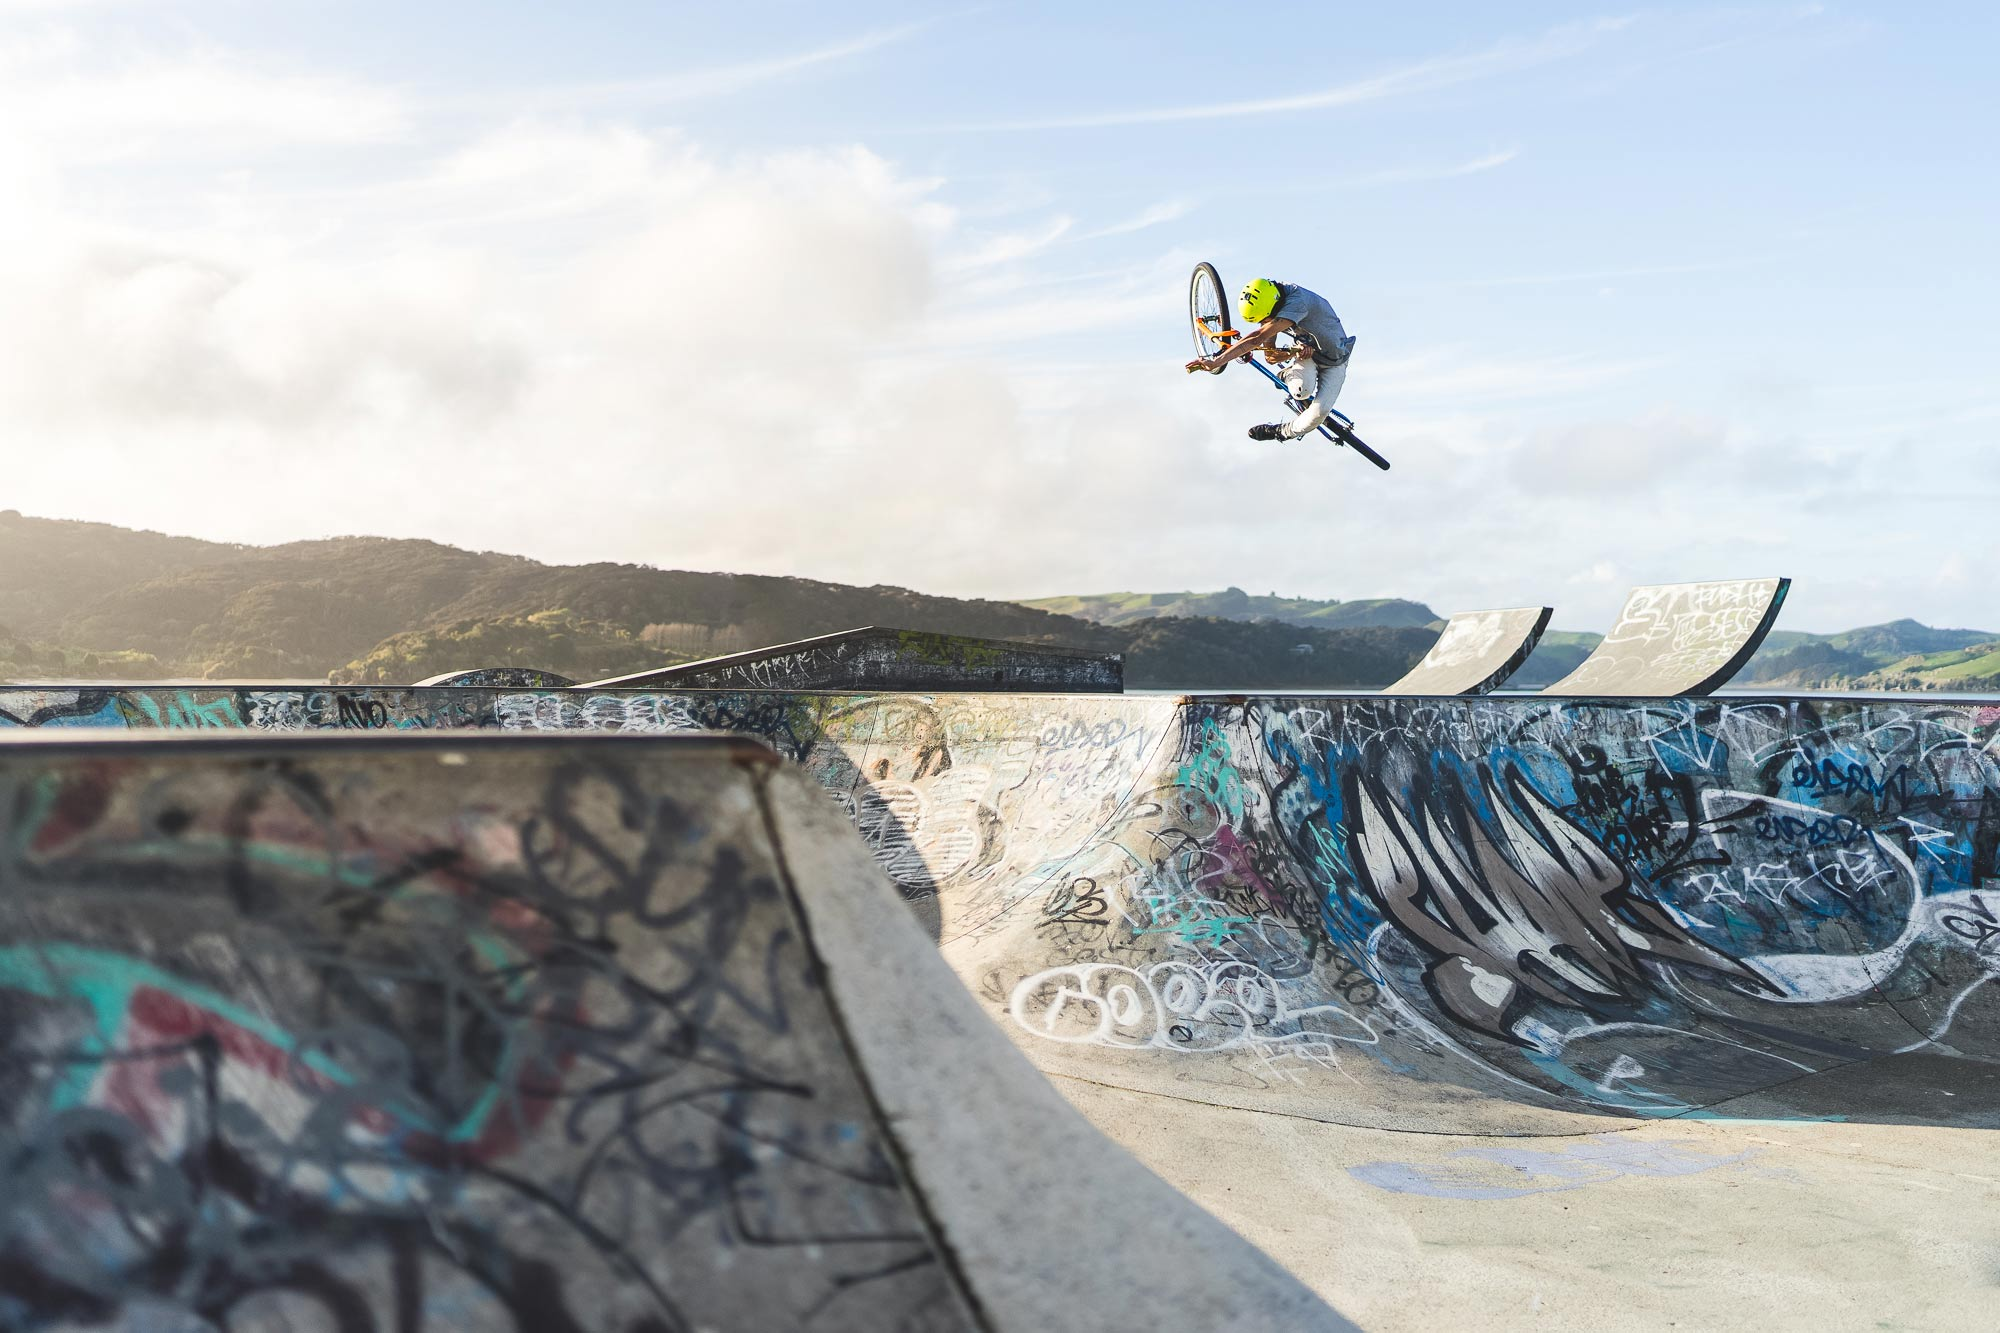 Mountain biker Lewis jones jumping at Raglan skatepark